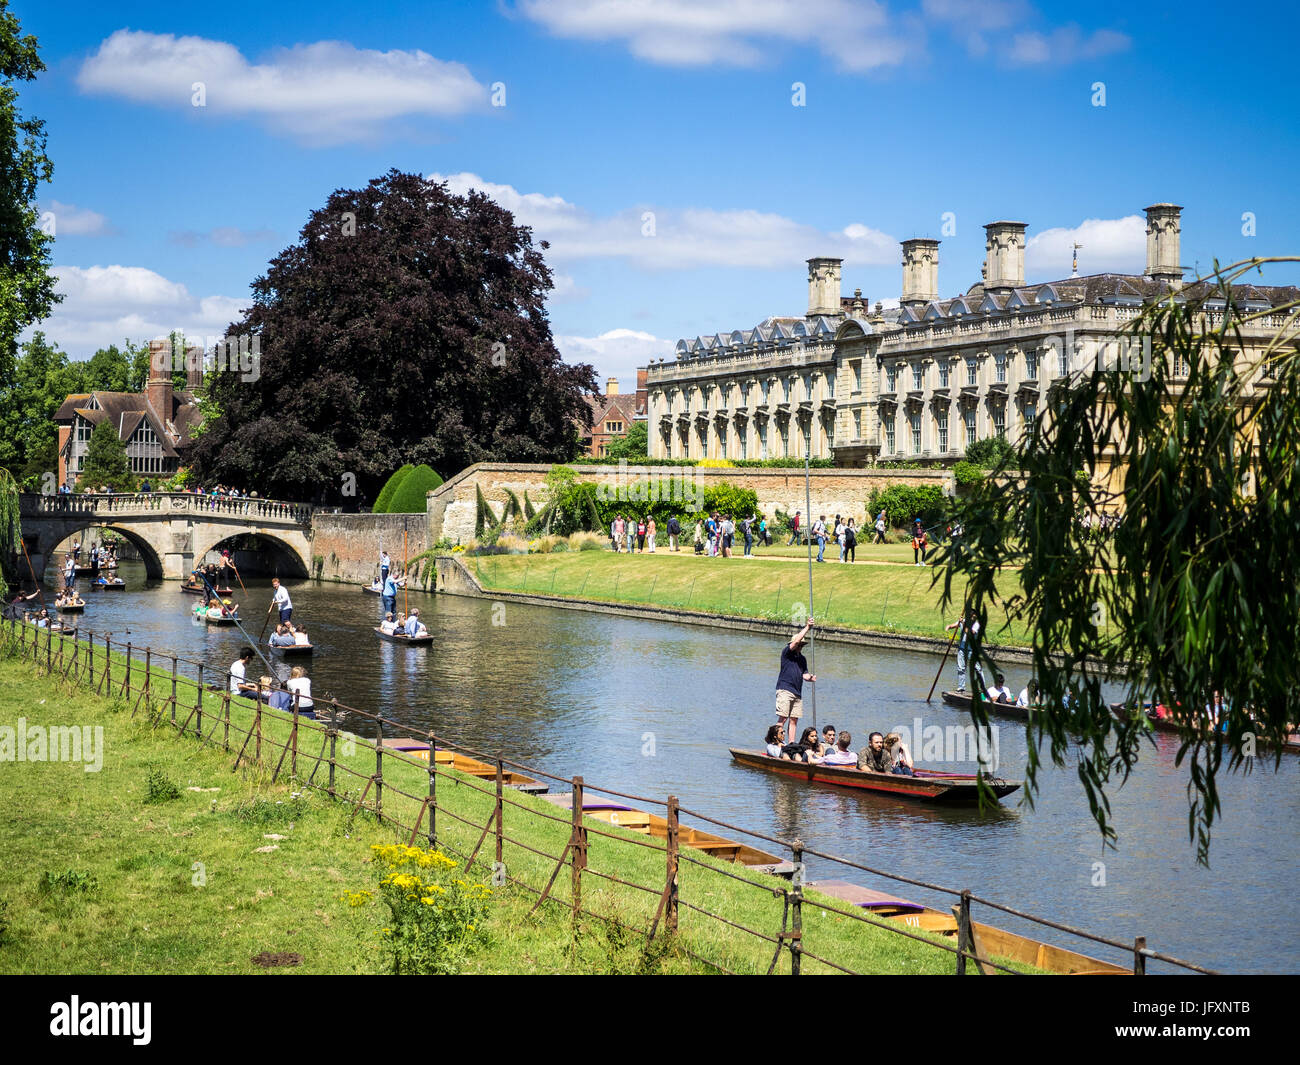 Cambridge Tourism - Punting on the River Cam in Cambridge UK - Stock Image